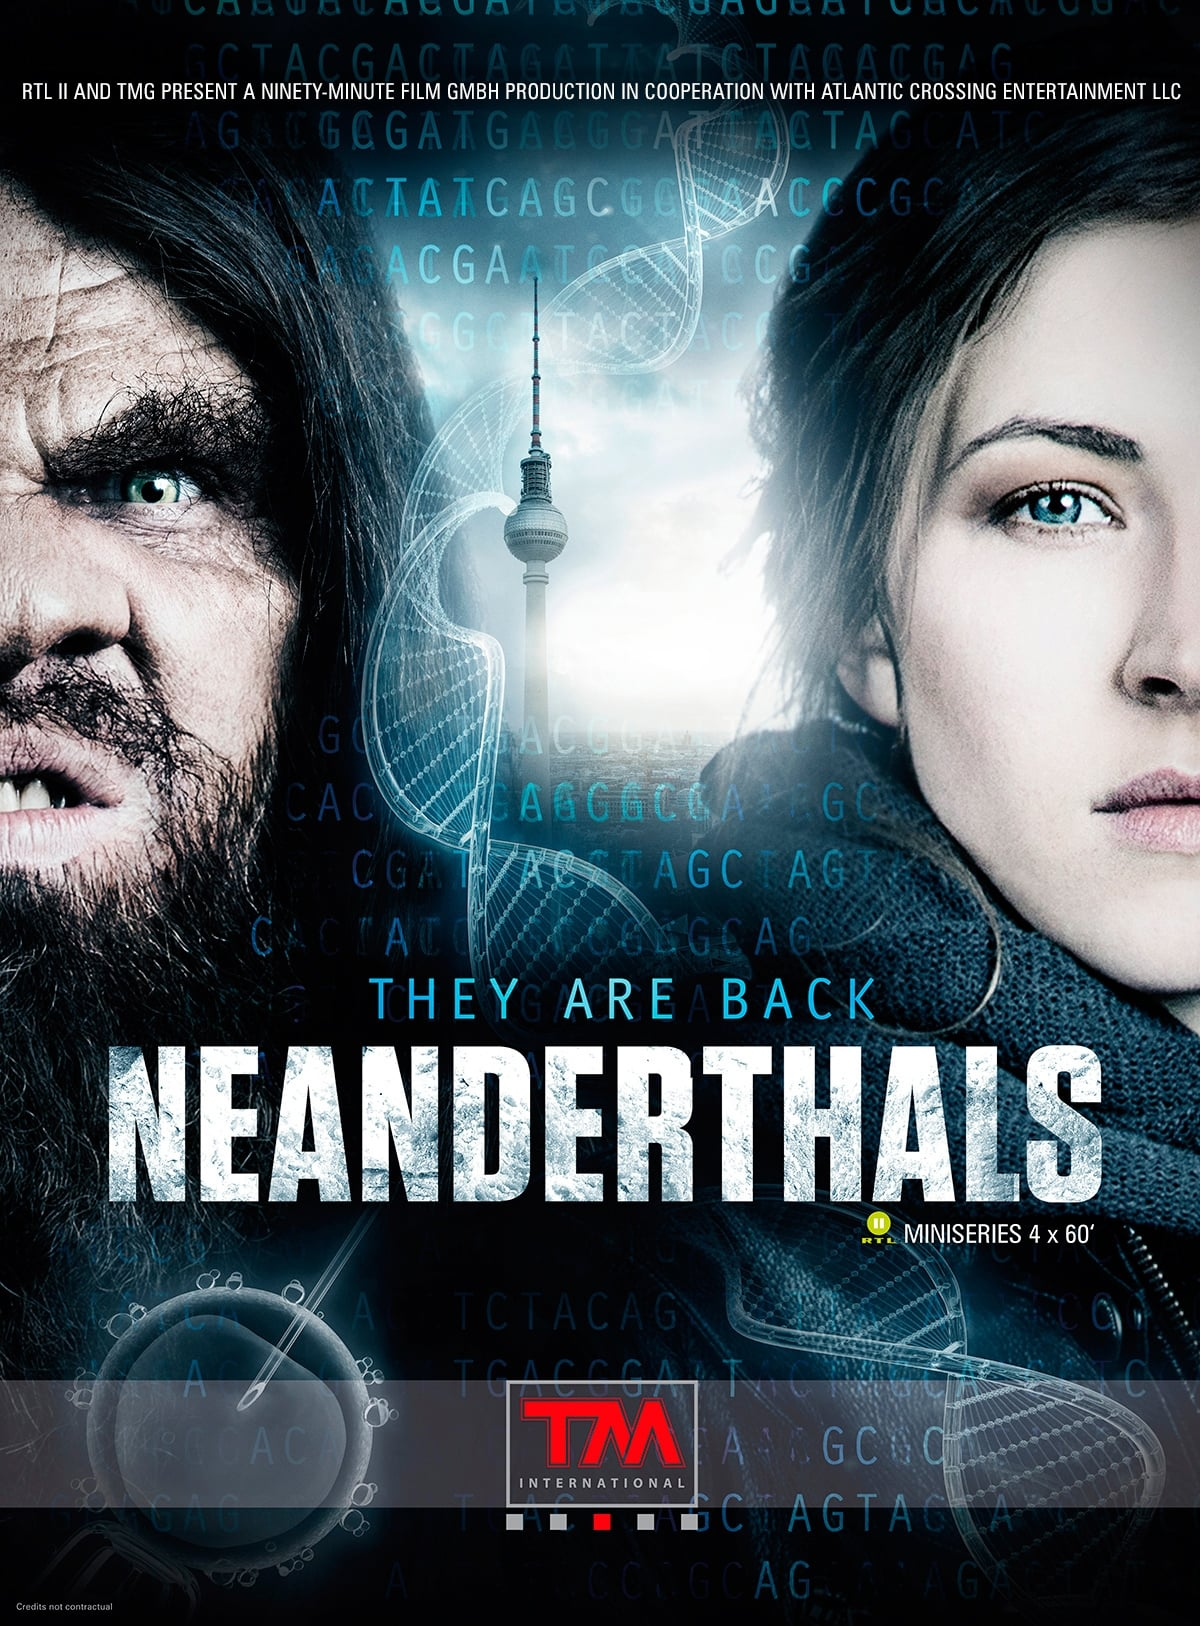 Neandertaler TV Shows About Experiment